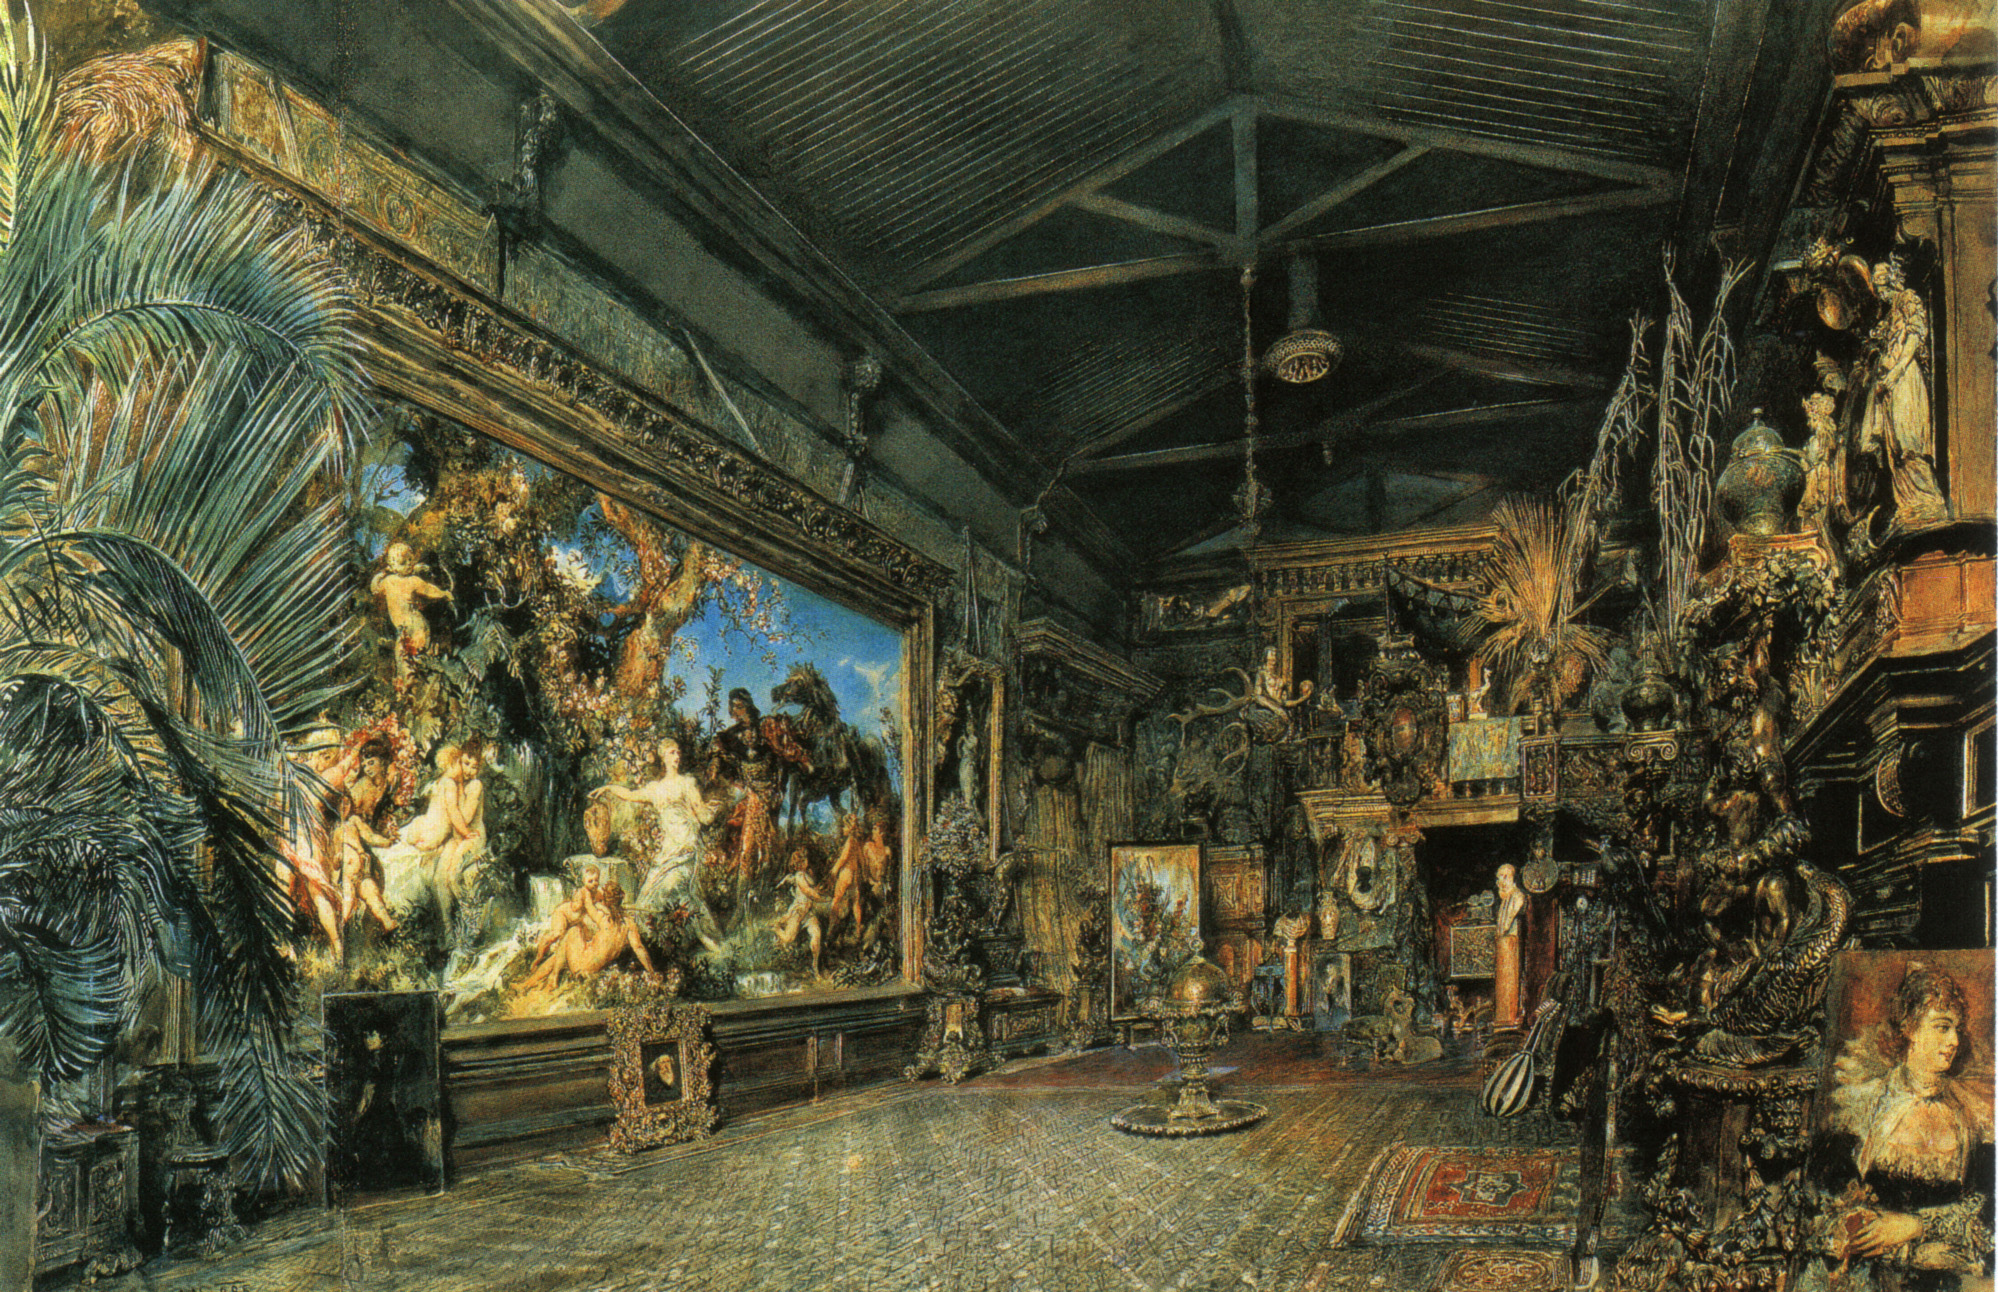 The studio before the auction, 1855